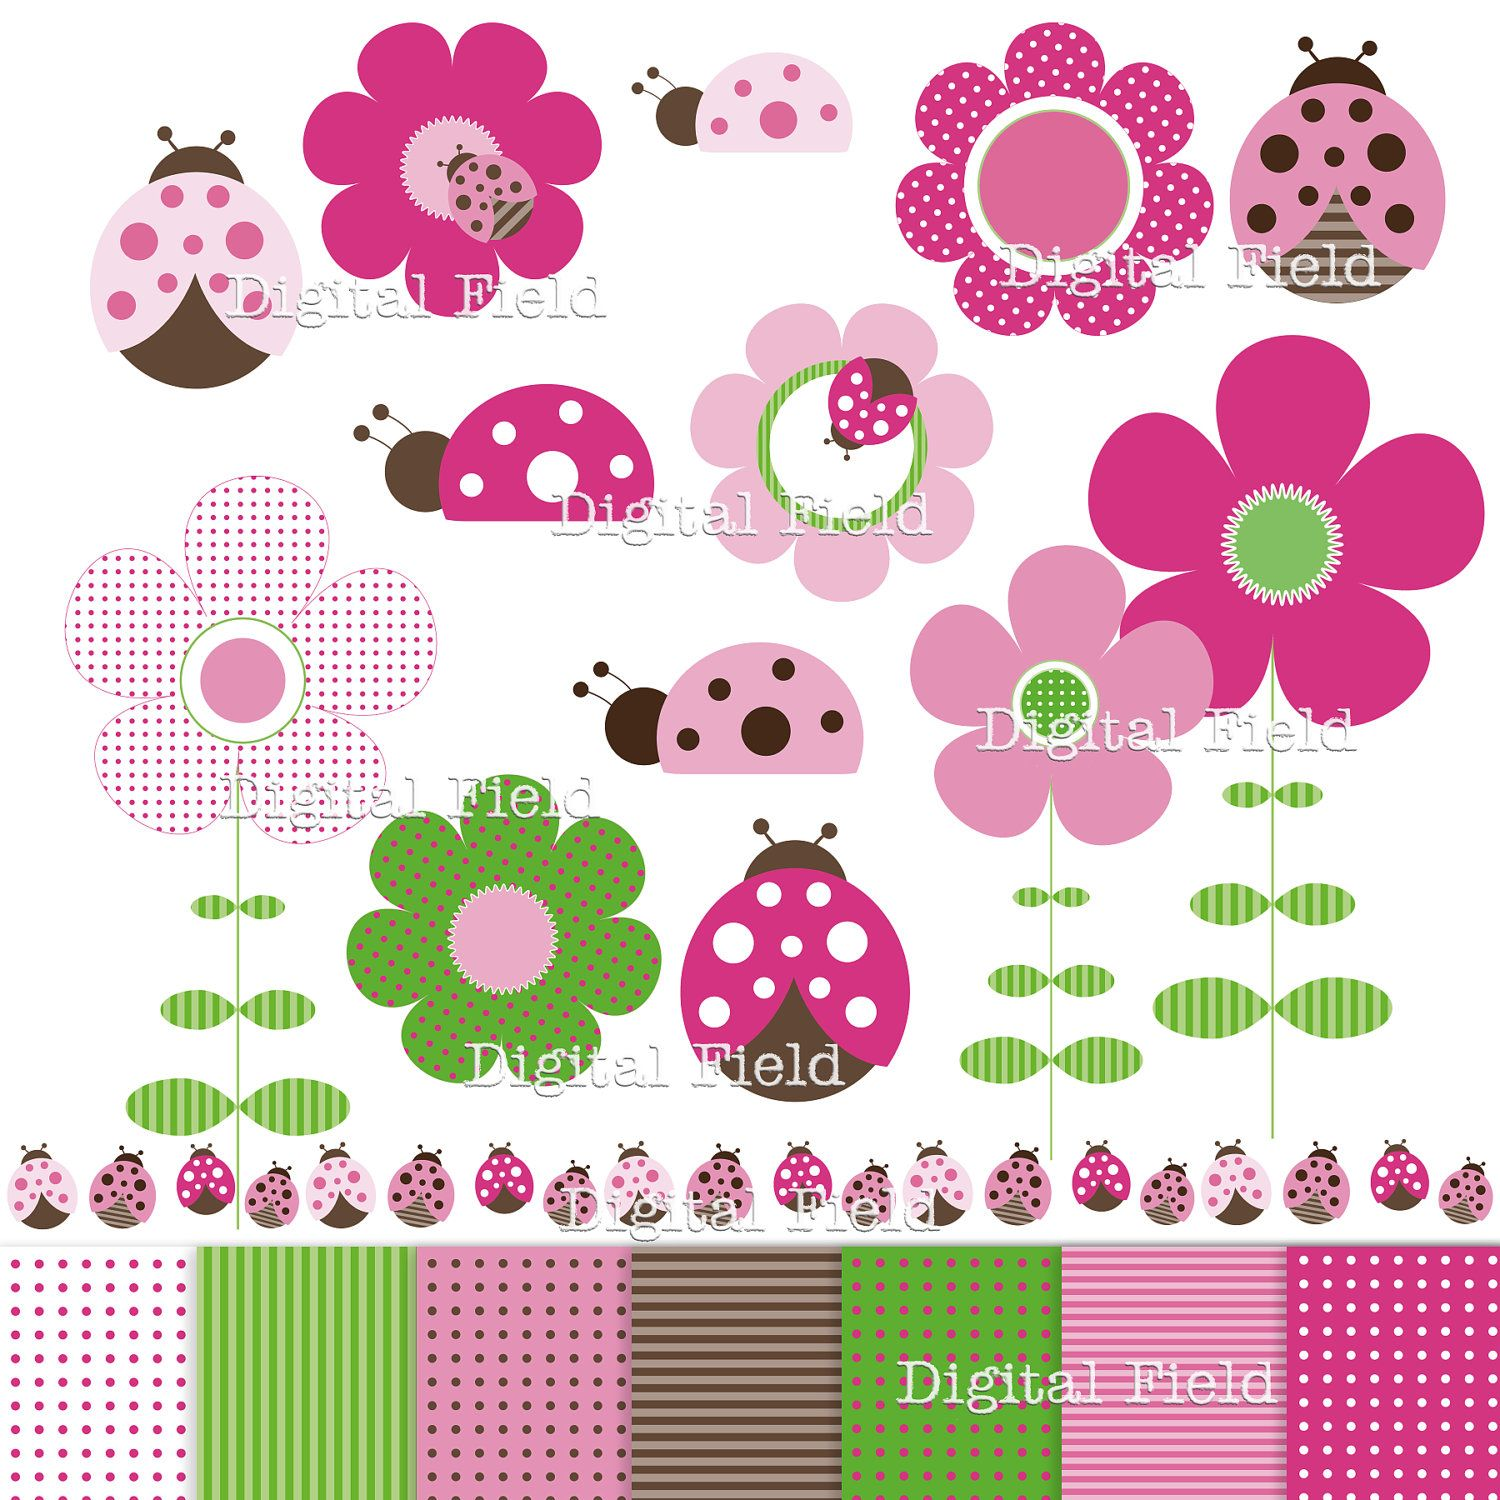 35 Great Image Of Free Printables Scrapbooking Stickers Free Printables Scrapbooking Stickers Free Printabl Scrapbook Printables Free Scrapbook Paper Clip Art